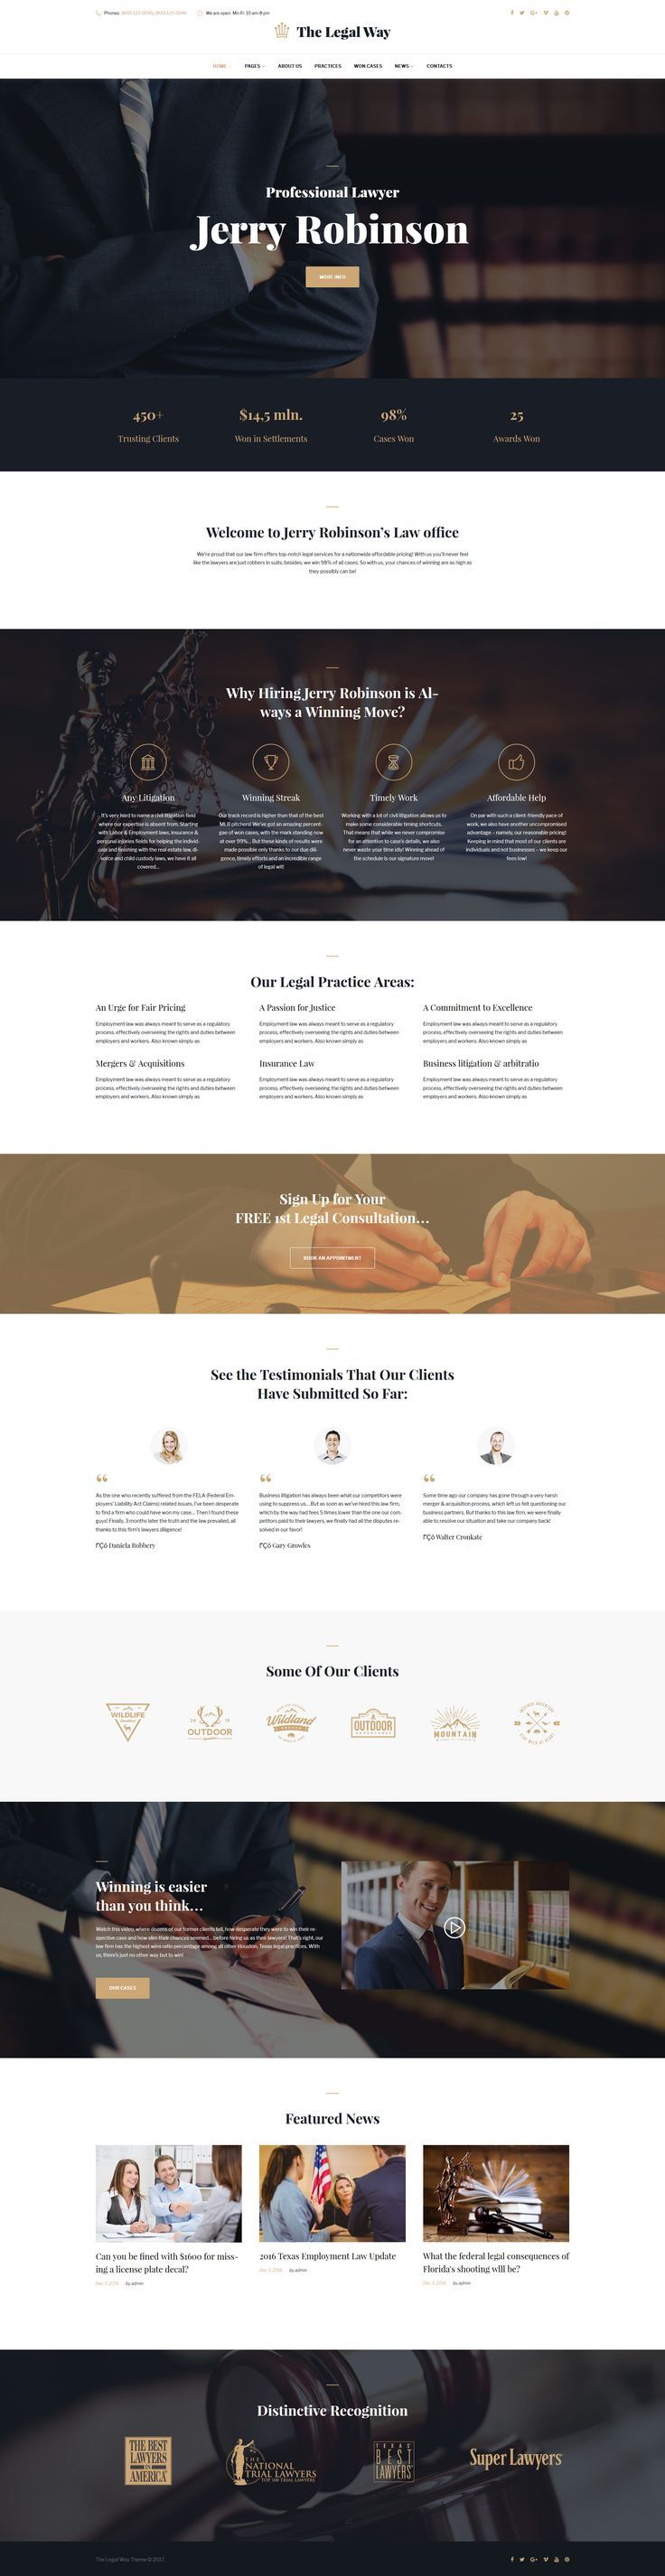 The Legal Way – Lawyer & Attorney WordPress Theme – Liz White | Mindset, Creative Business, and Entrepreneur Tips